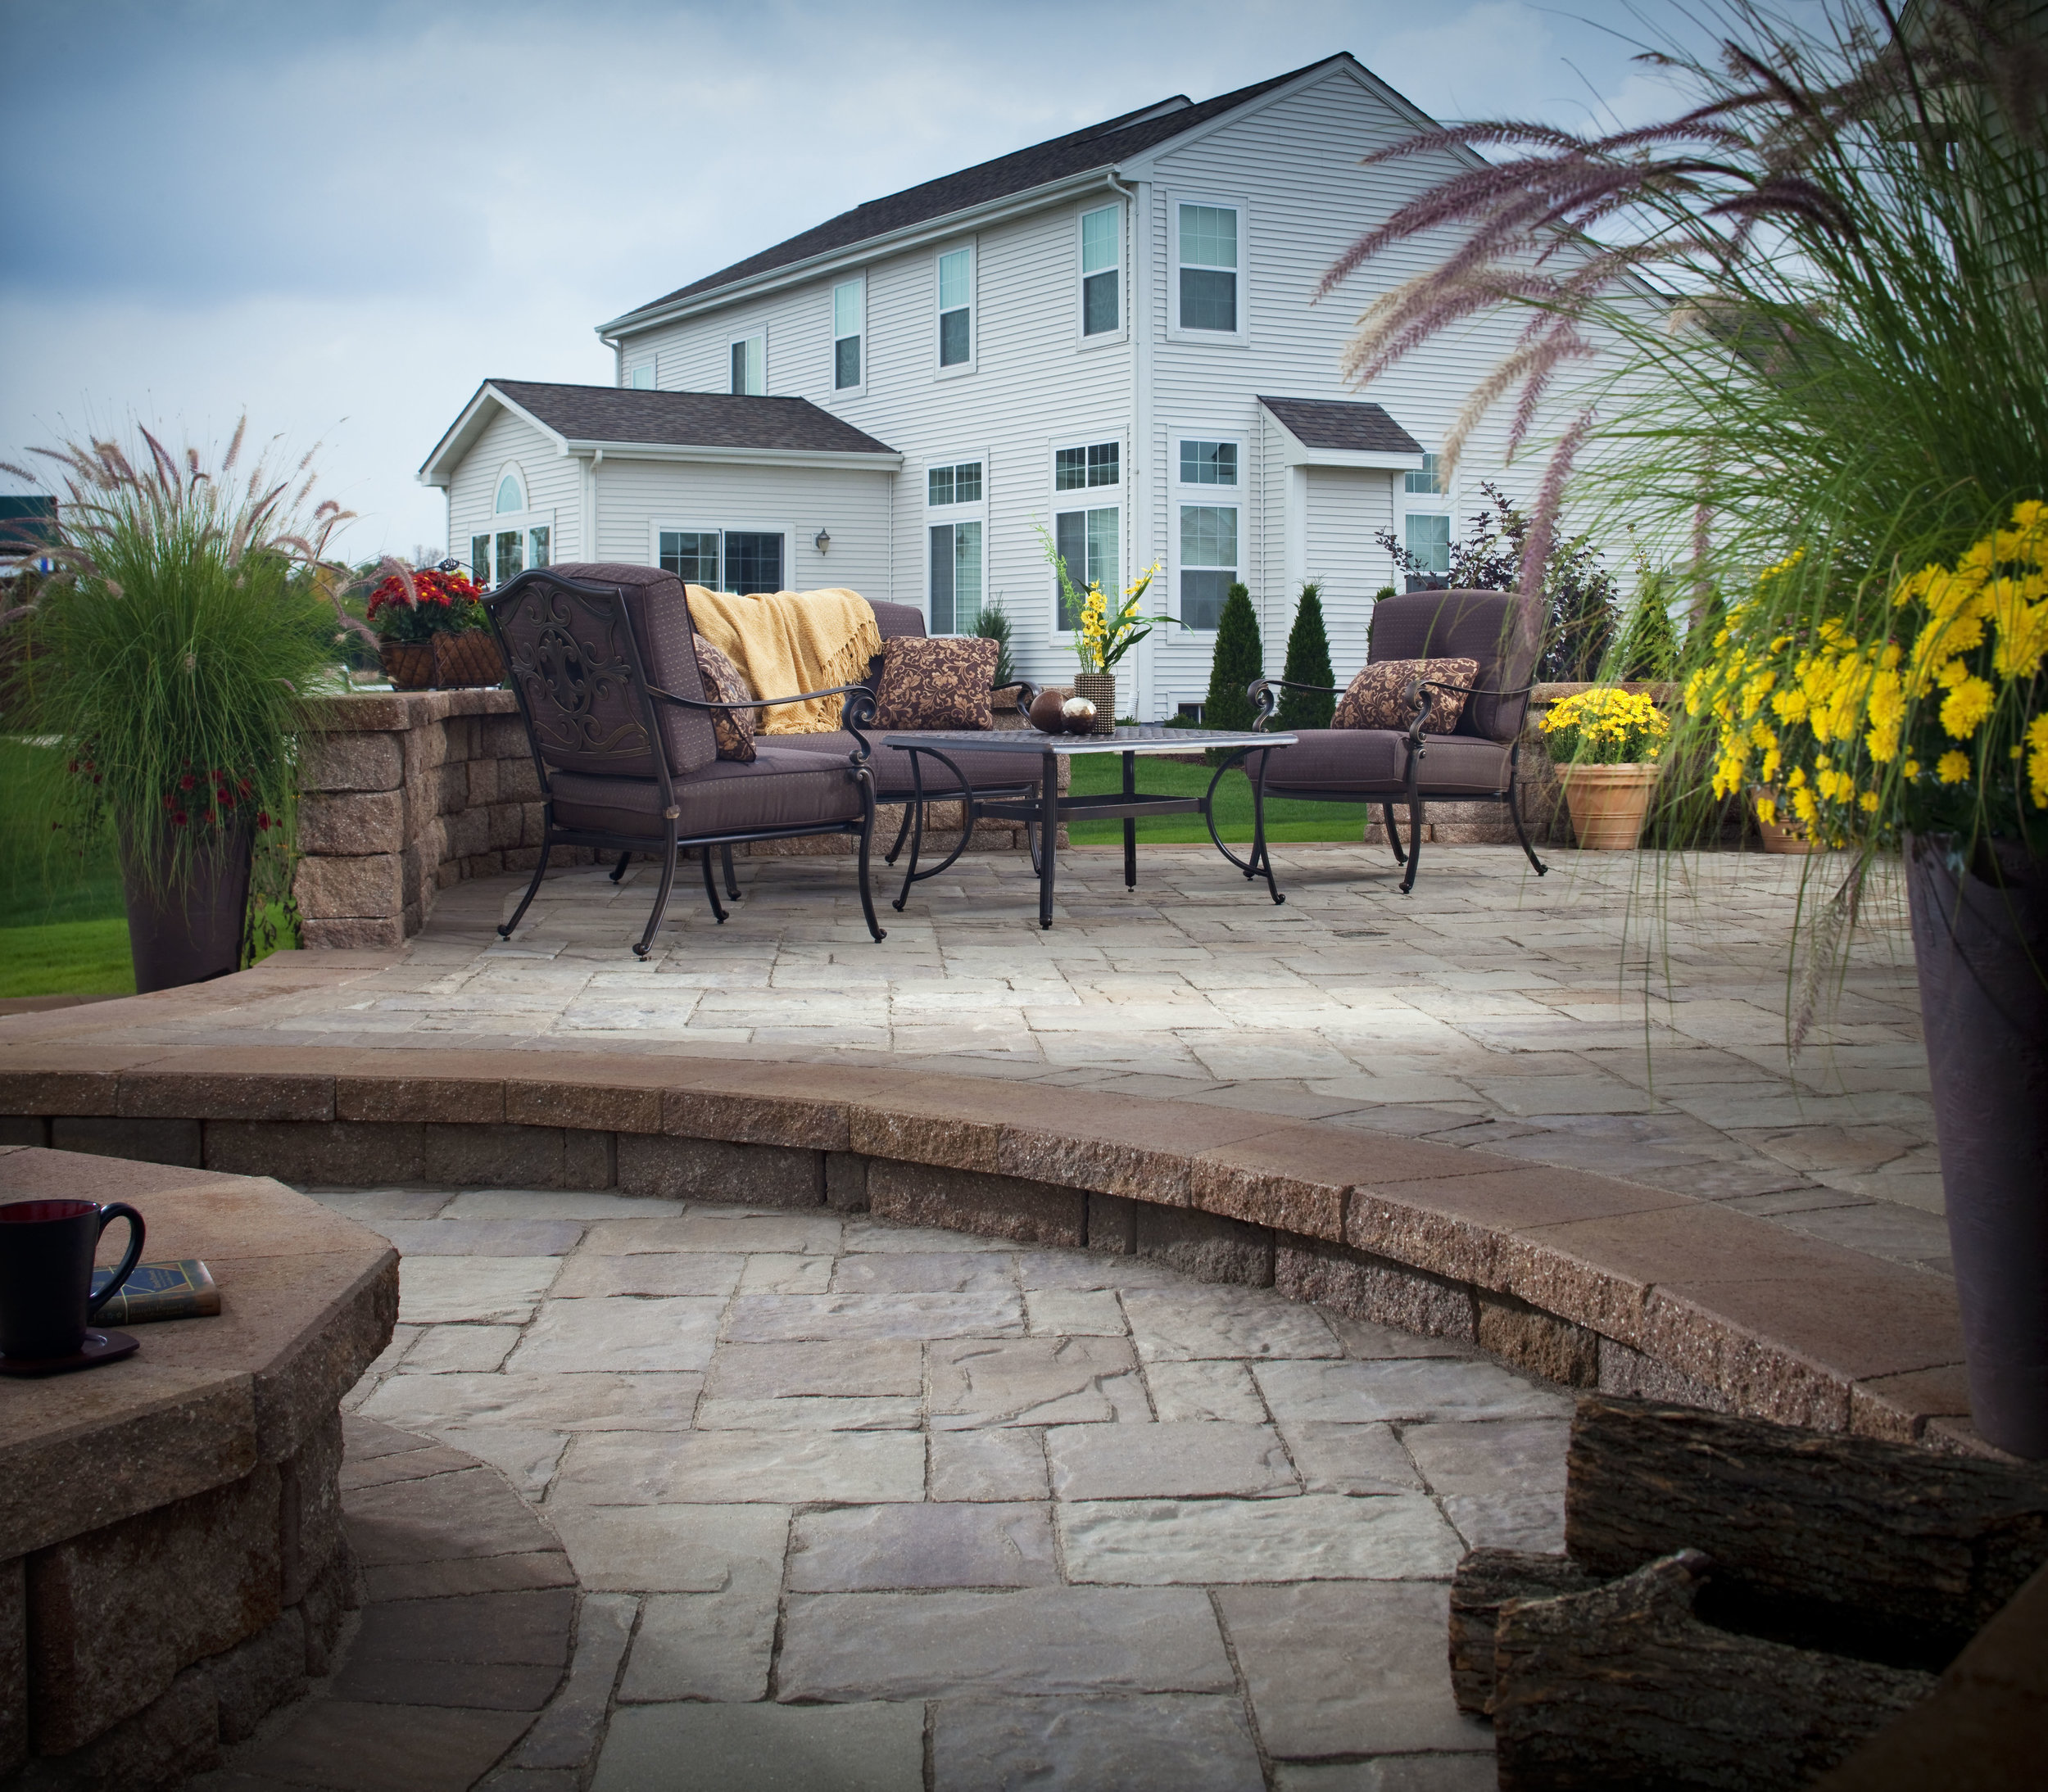 patio sitting wall hardscape landscape design fire pit backyard outdoor getaway outdoor room